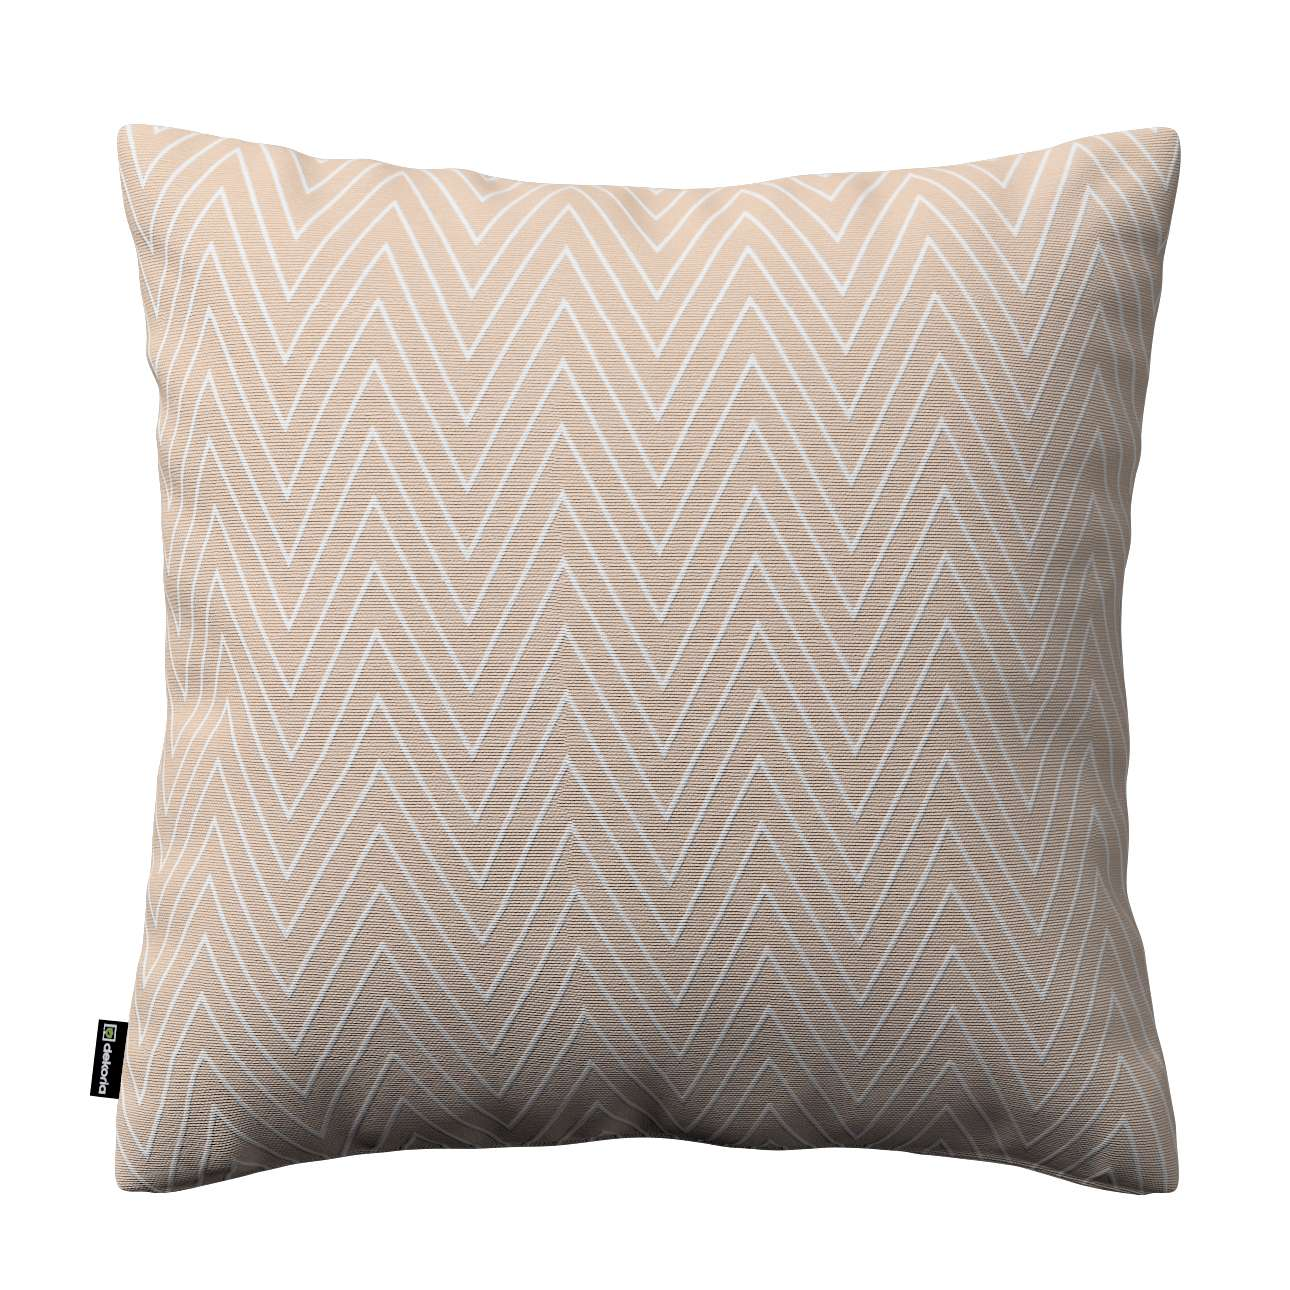 Kinga cushion cover 43 x 43 cm (17 x 17 inch) in collection Brooklyn, fabric: 137-91